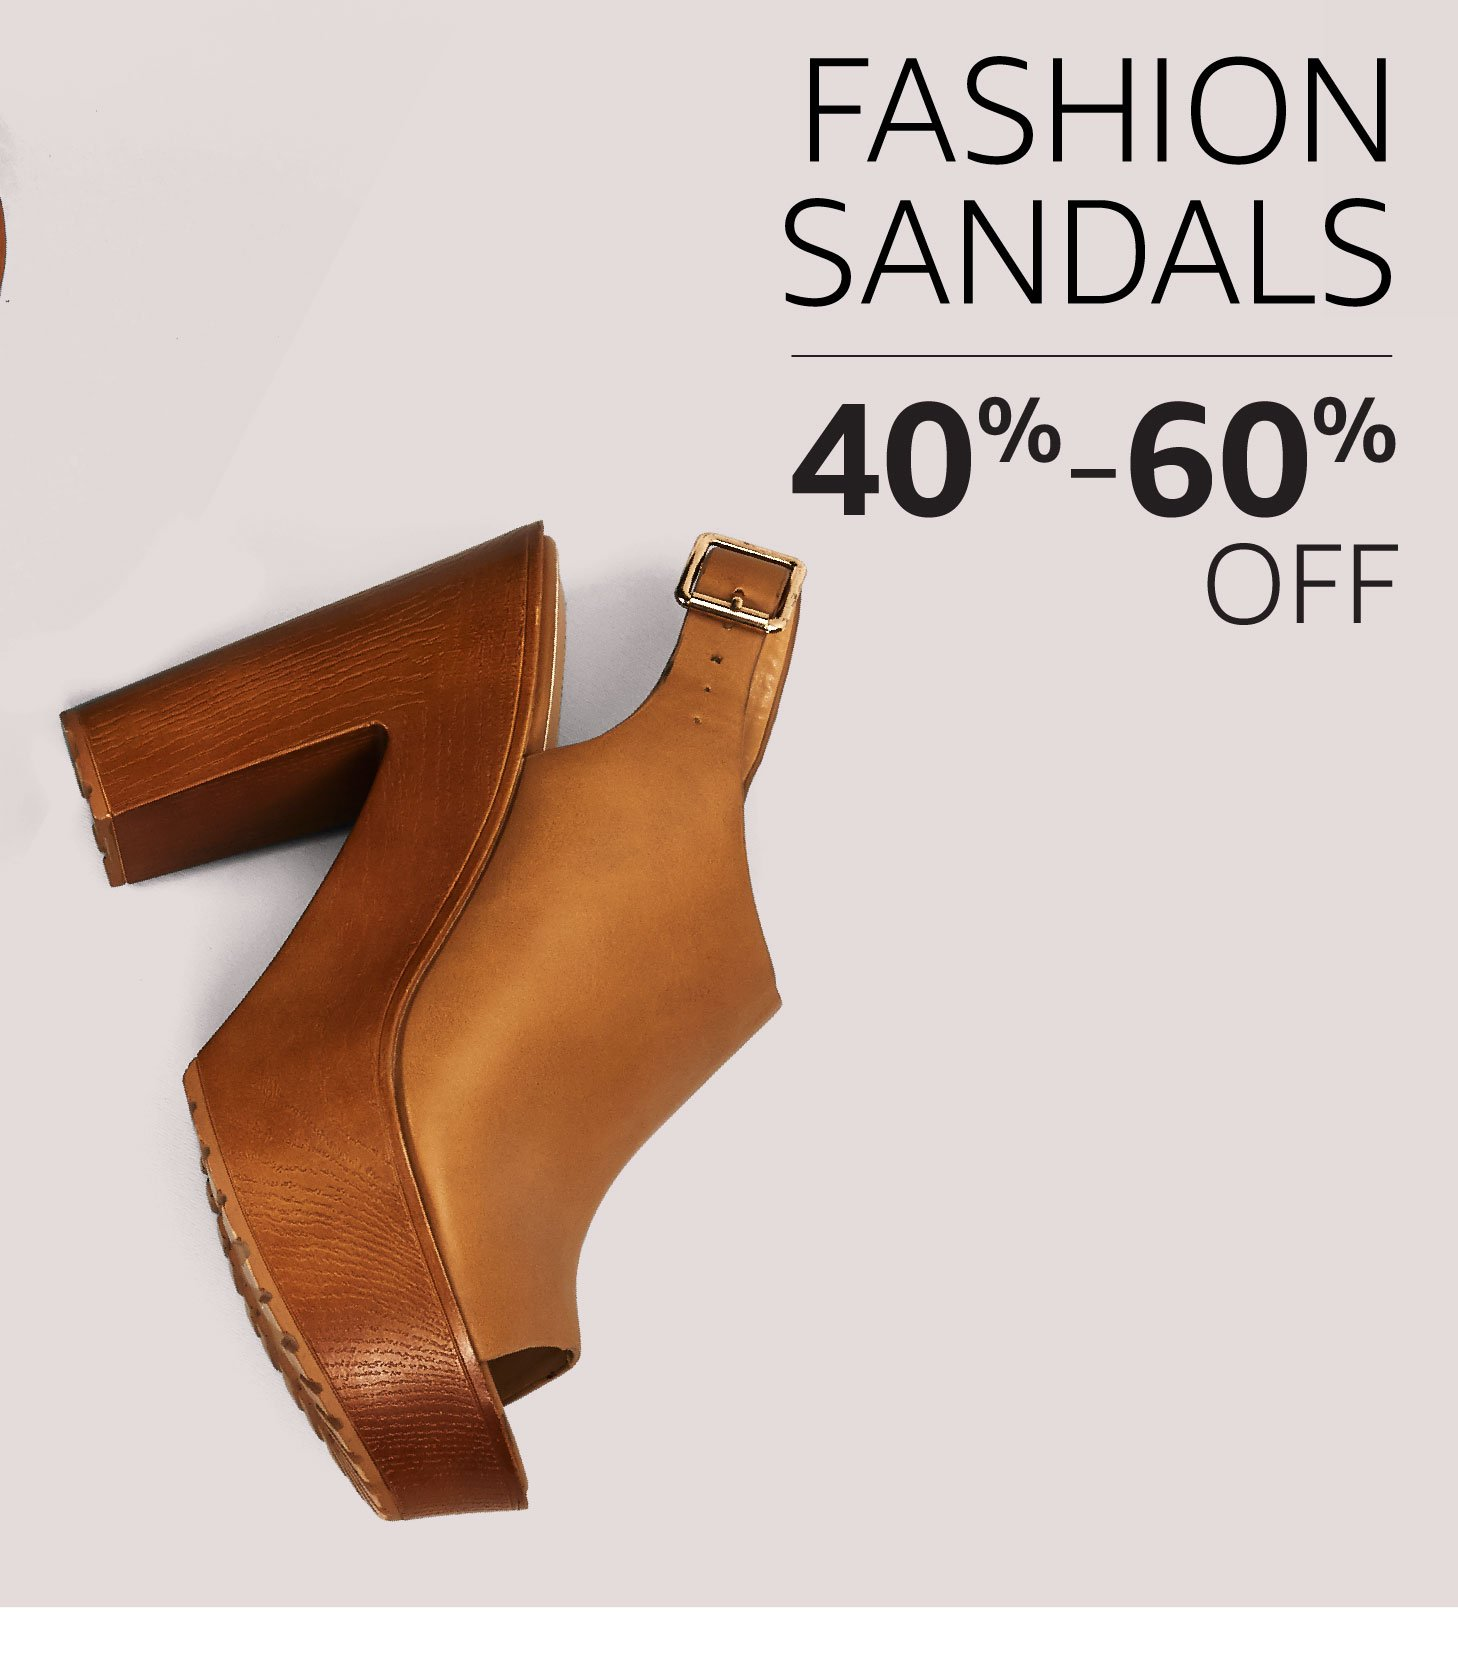 Fashion Sandals: 40% to 60% off